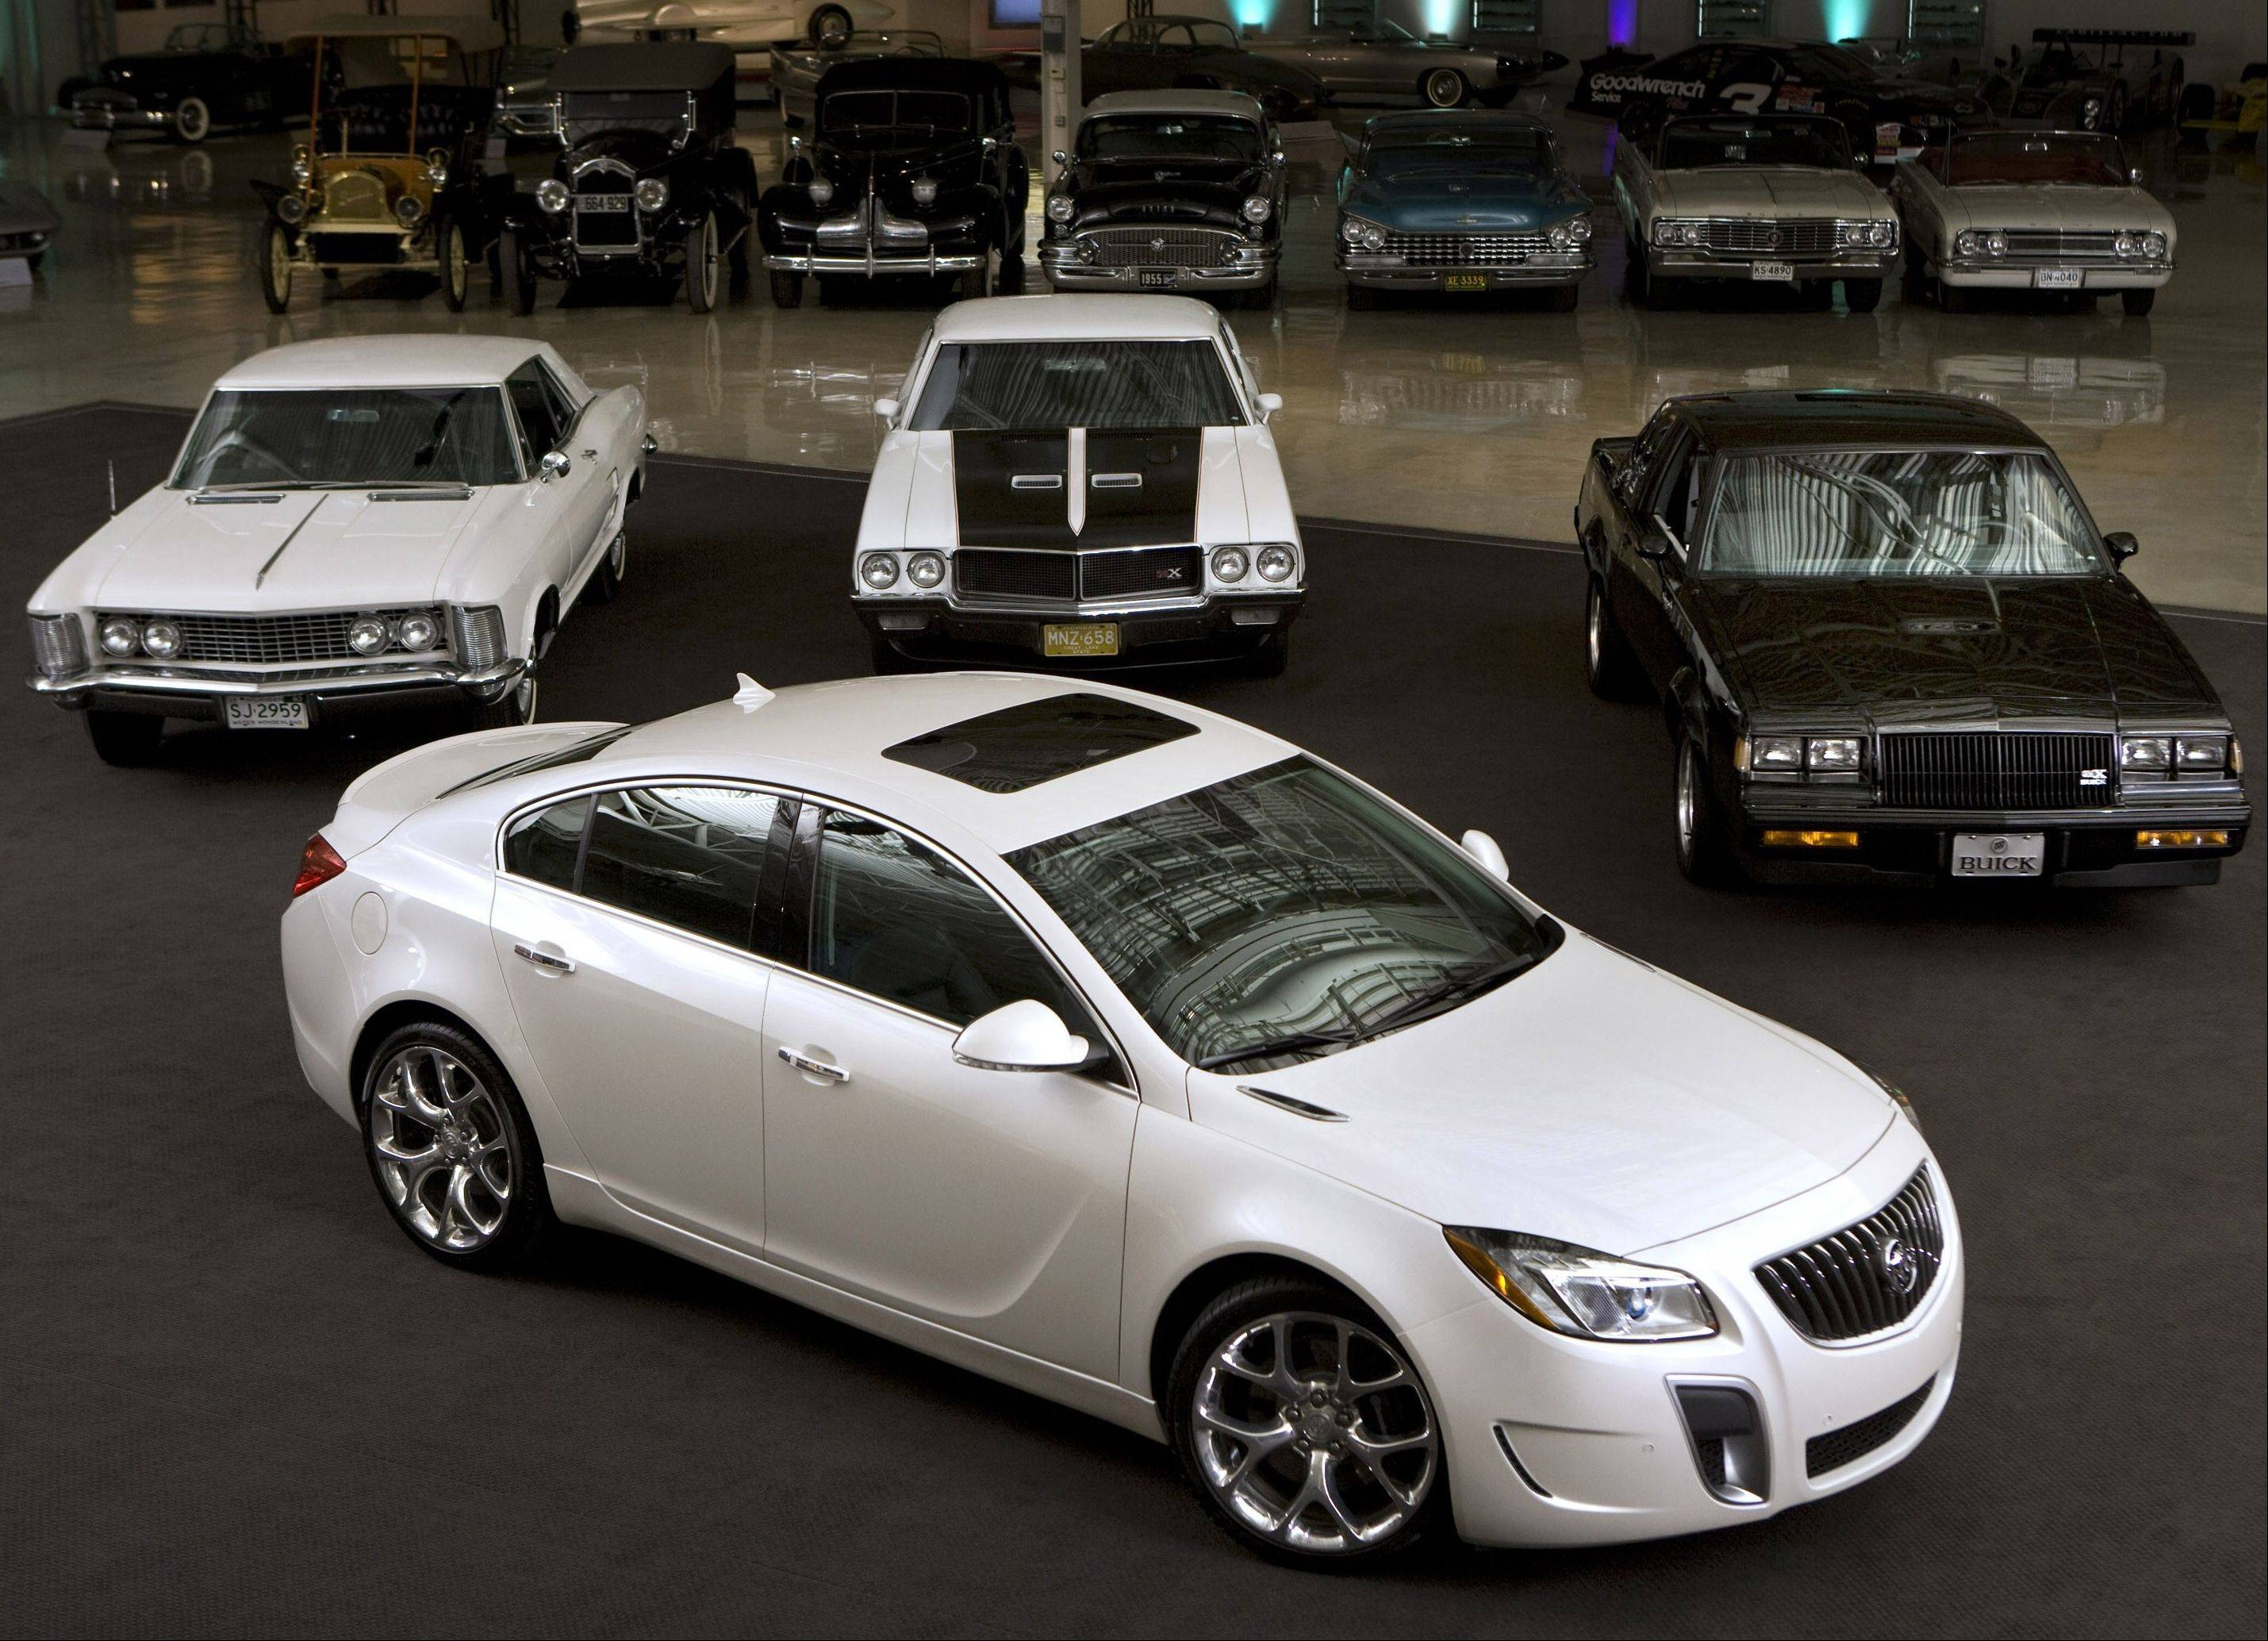 The new 2012 Buick Regal GS certainly ranks with the best in its long lineage.